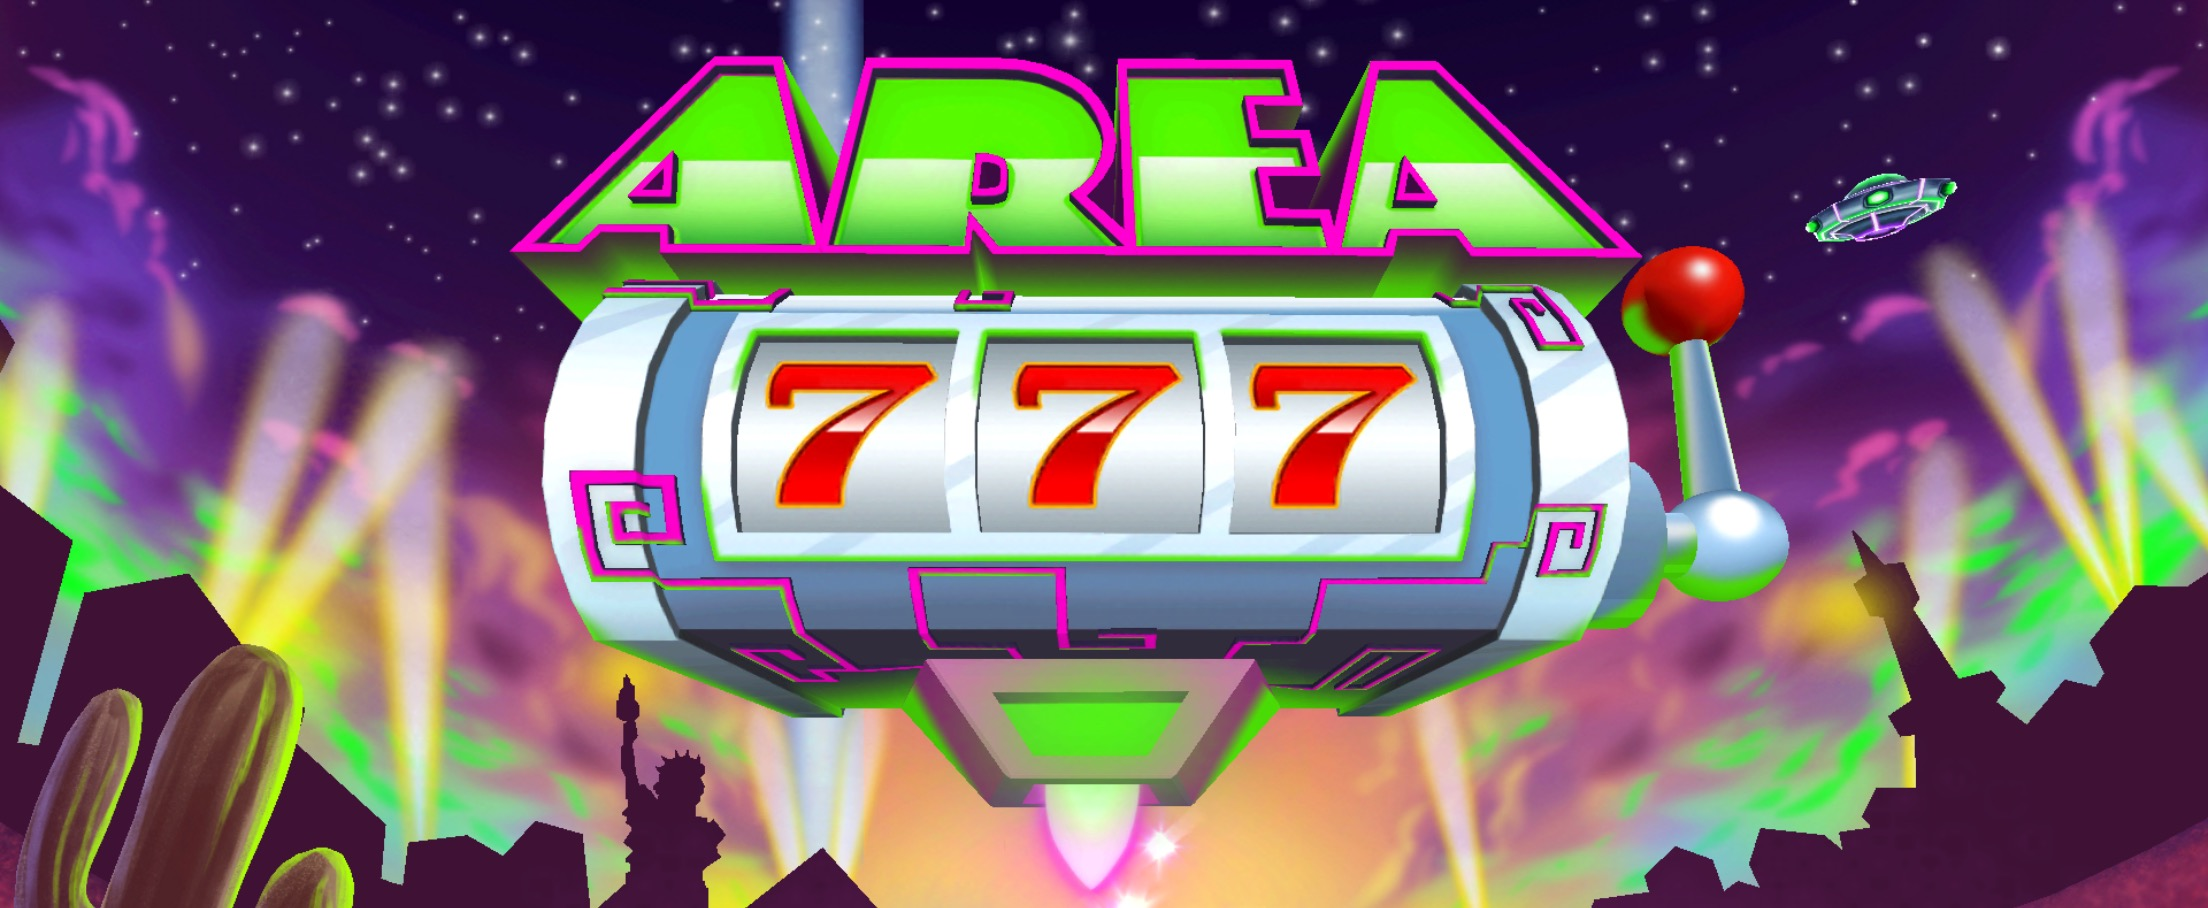 Welcome to Area 777  Adult Swim s slot machine and tower defense hybrid game  for iOS. to Area 777  Adult Swim s slot machine and tower defense hybrid